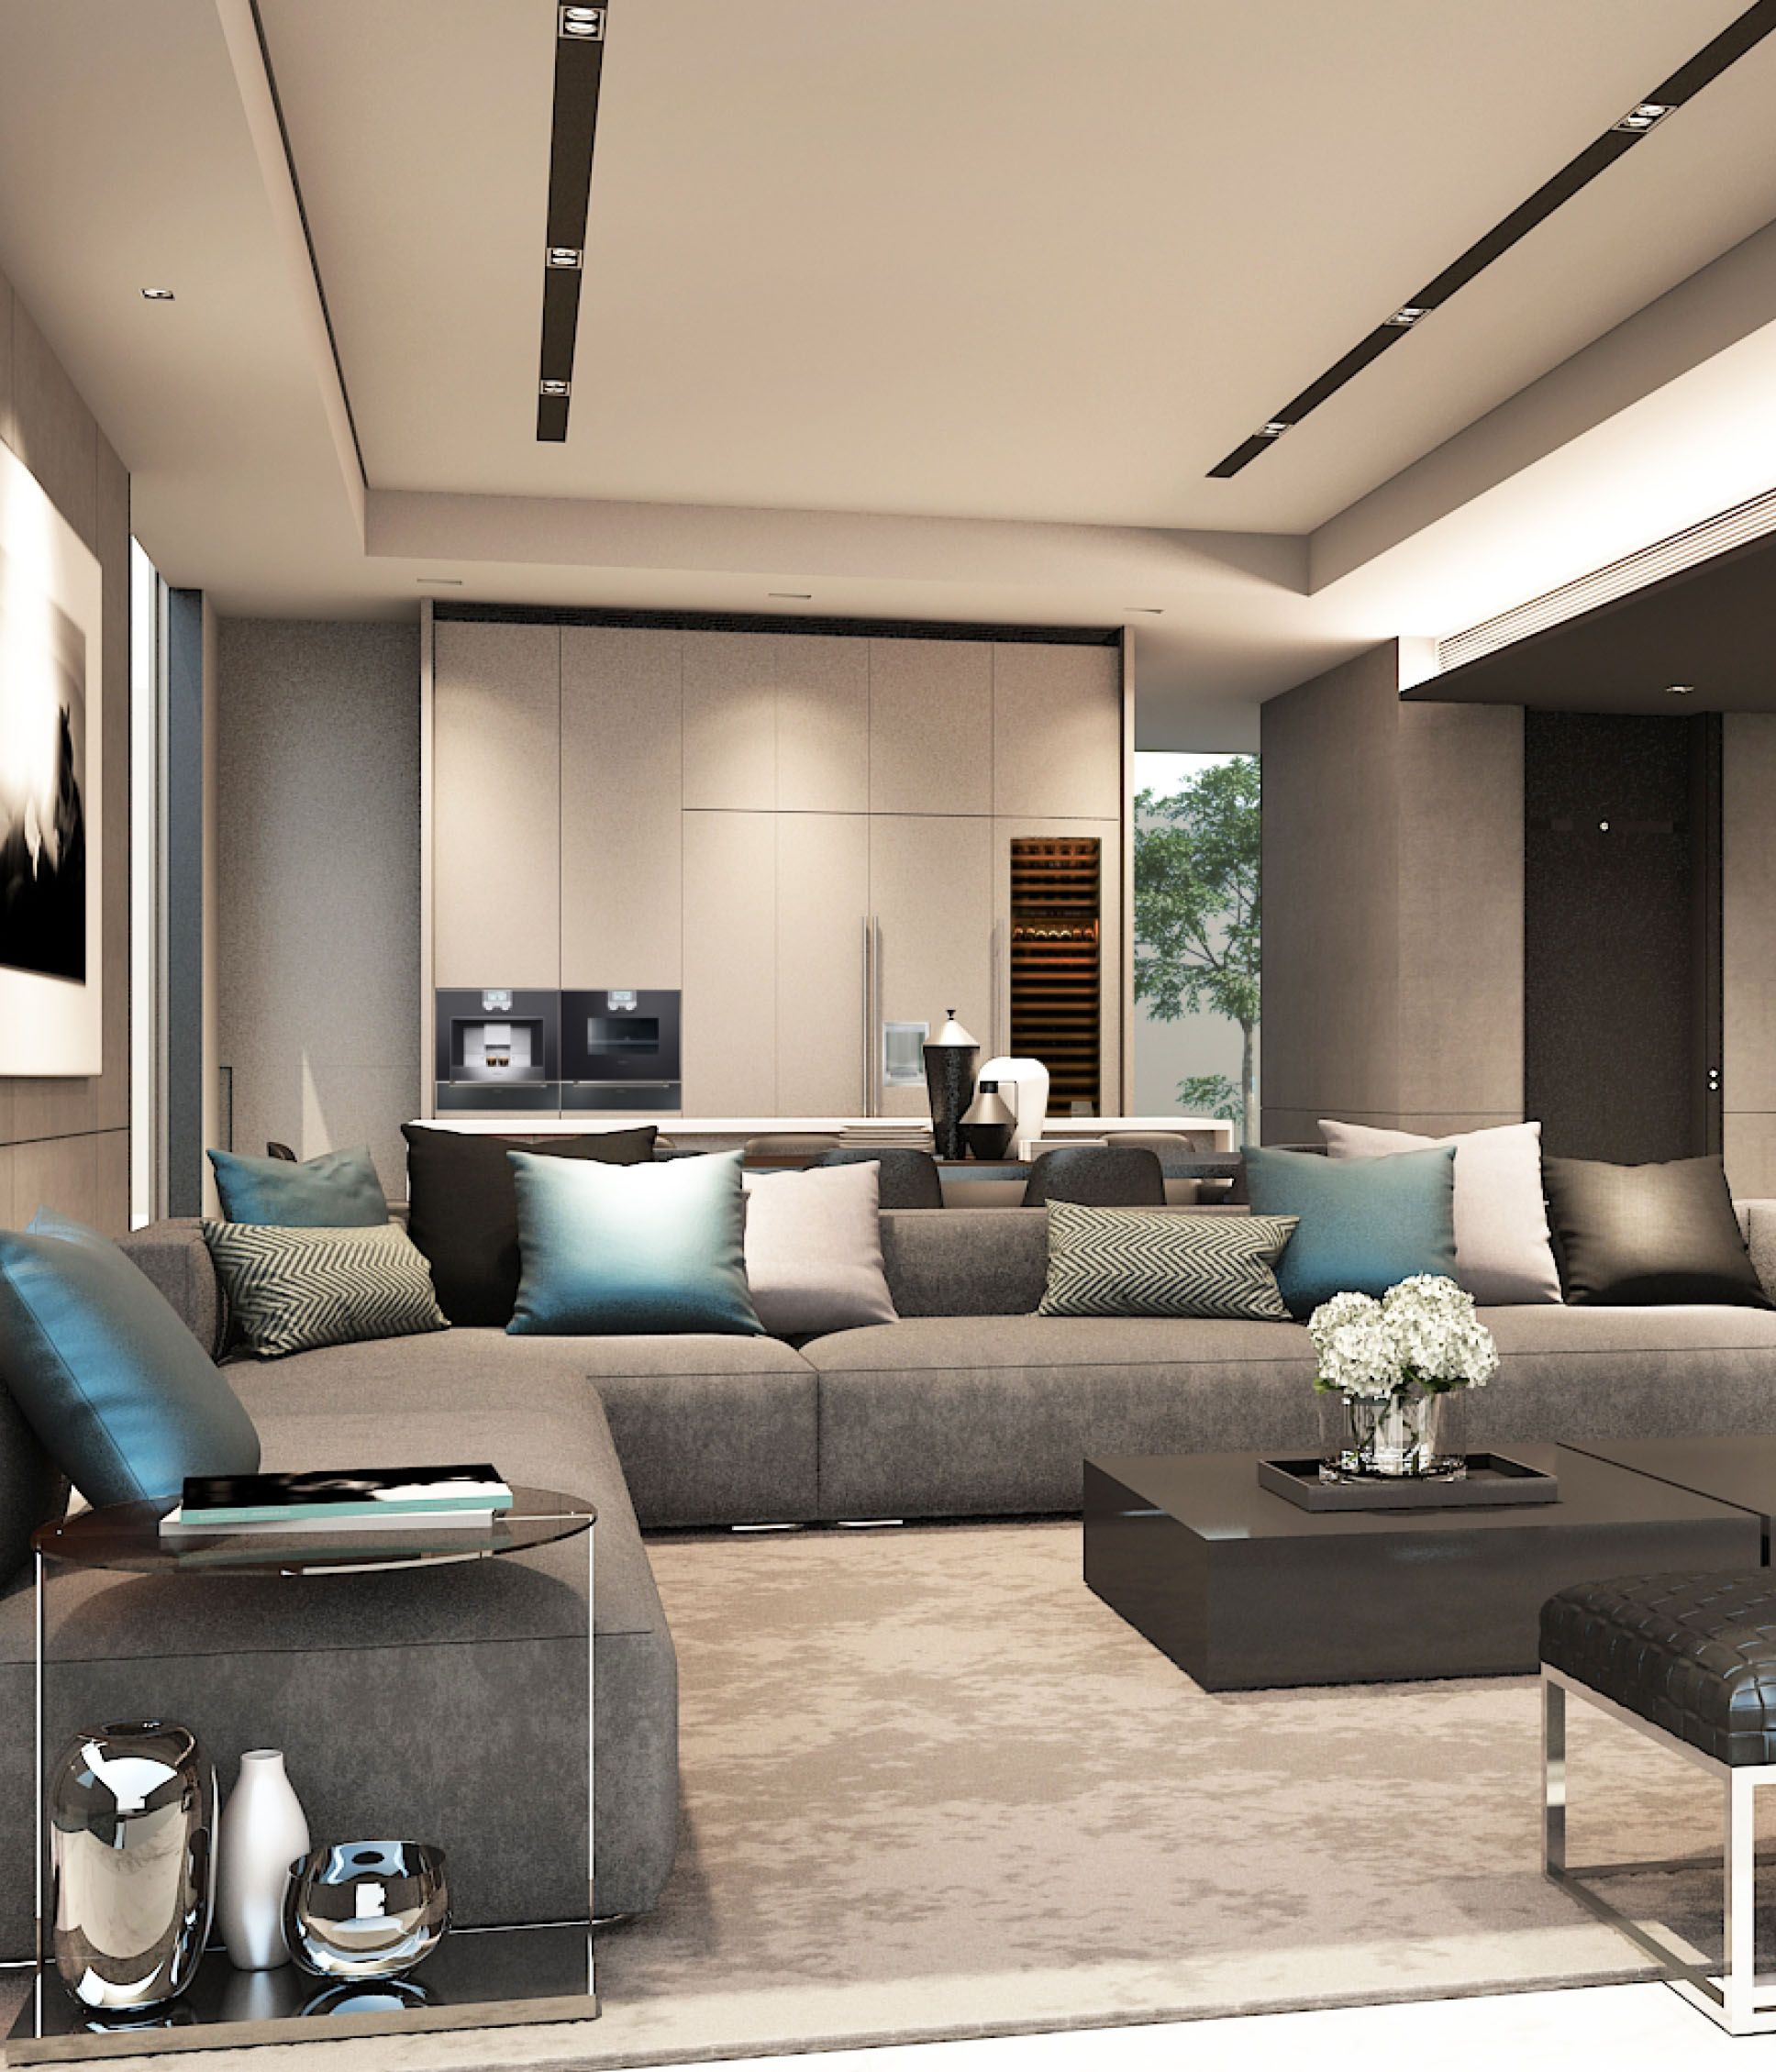 Built in cabinets contemporary living room lucy and company - Scda Mixed Use Development Sanya China Show Villa Type 1 Lounge